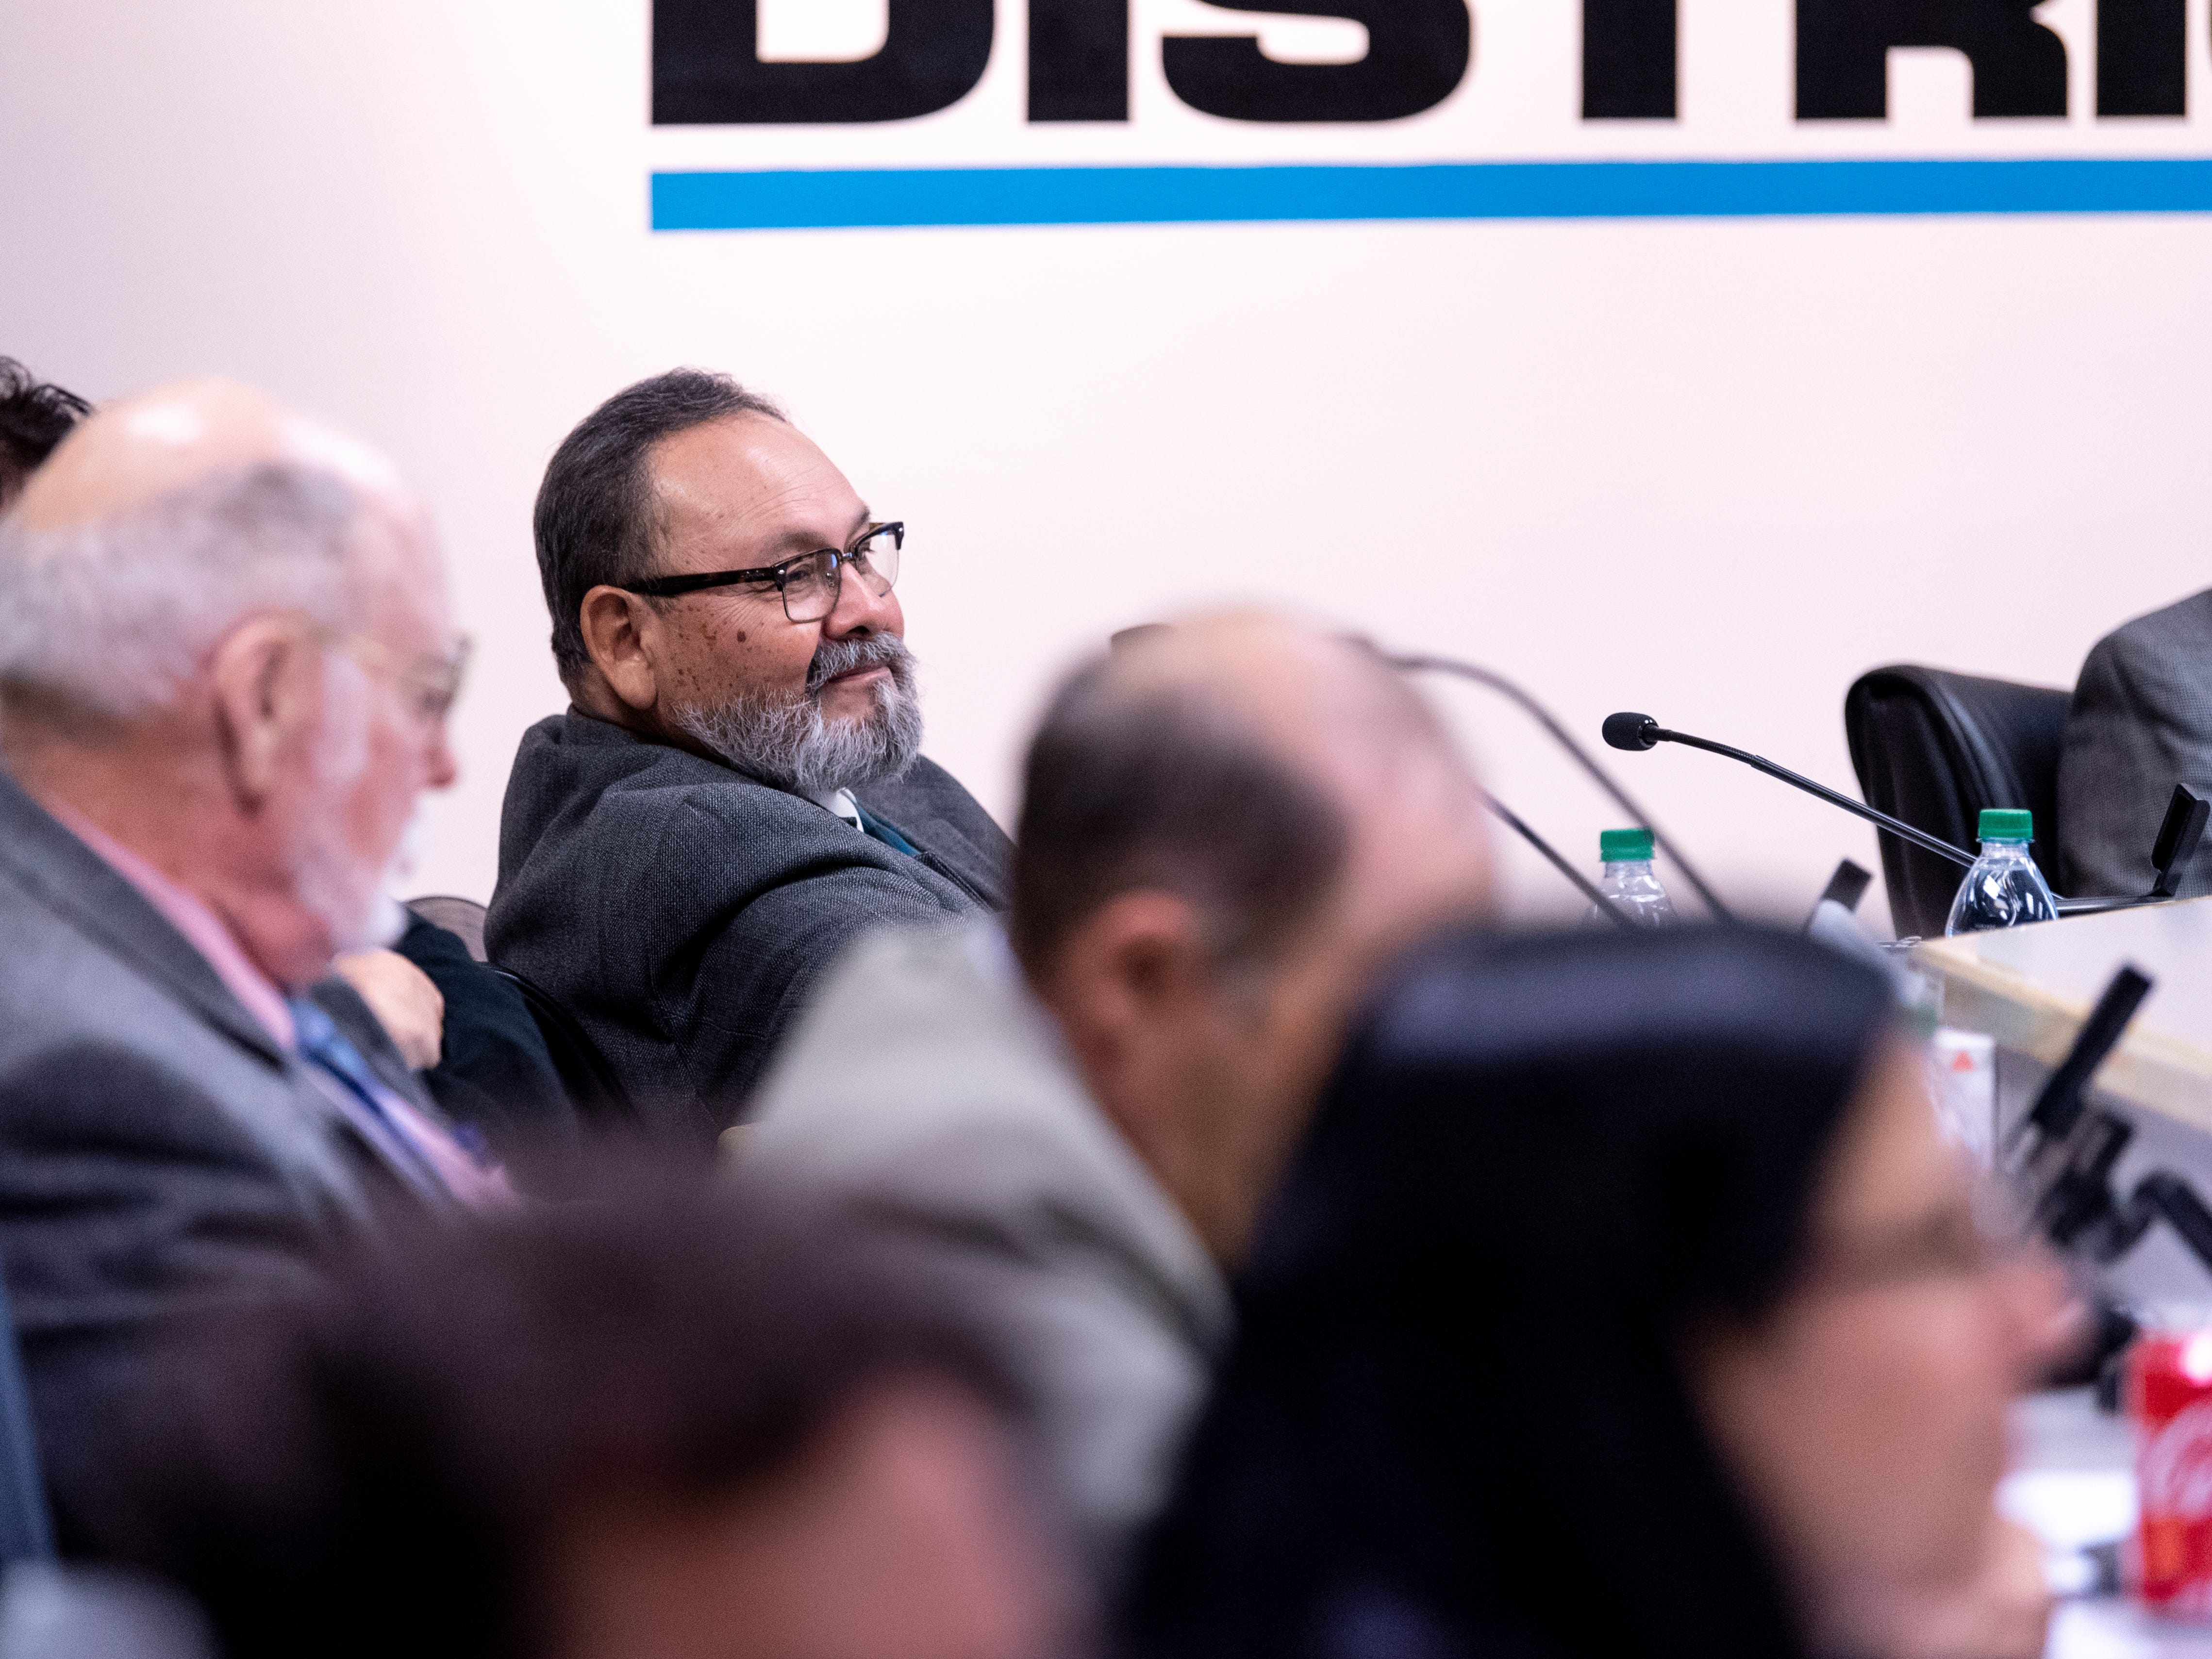 Visalia school board Trustee Juan Guerrero listens as supporters of Todd Oto speak out during the Visalia Unified School District meeting on Tuesday, May 7, 2019.